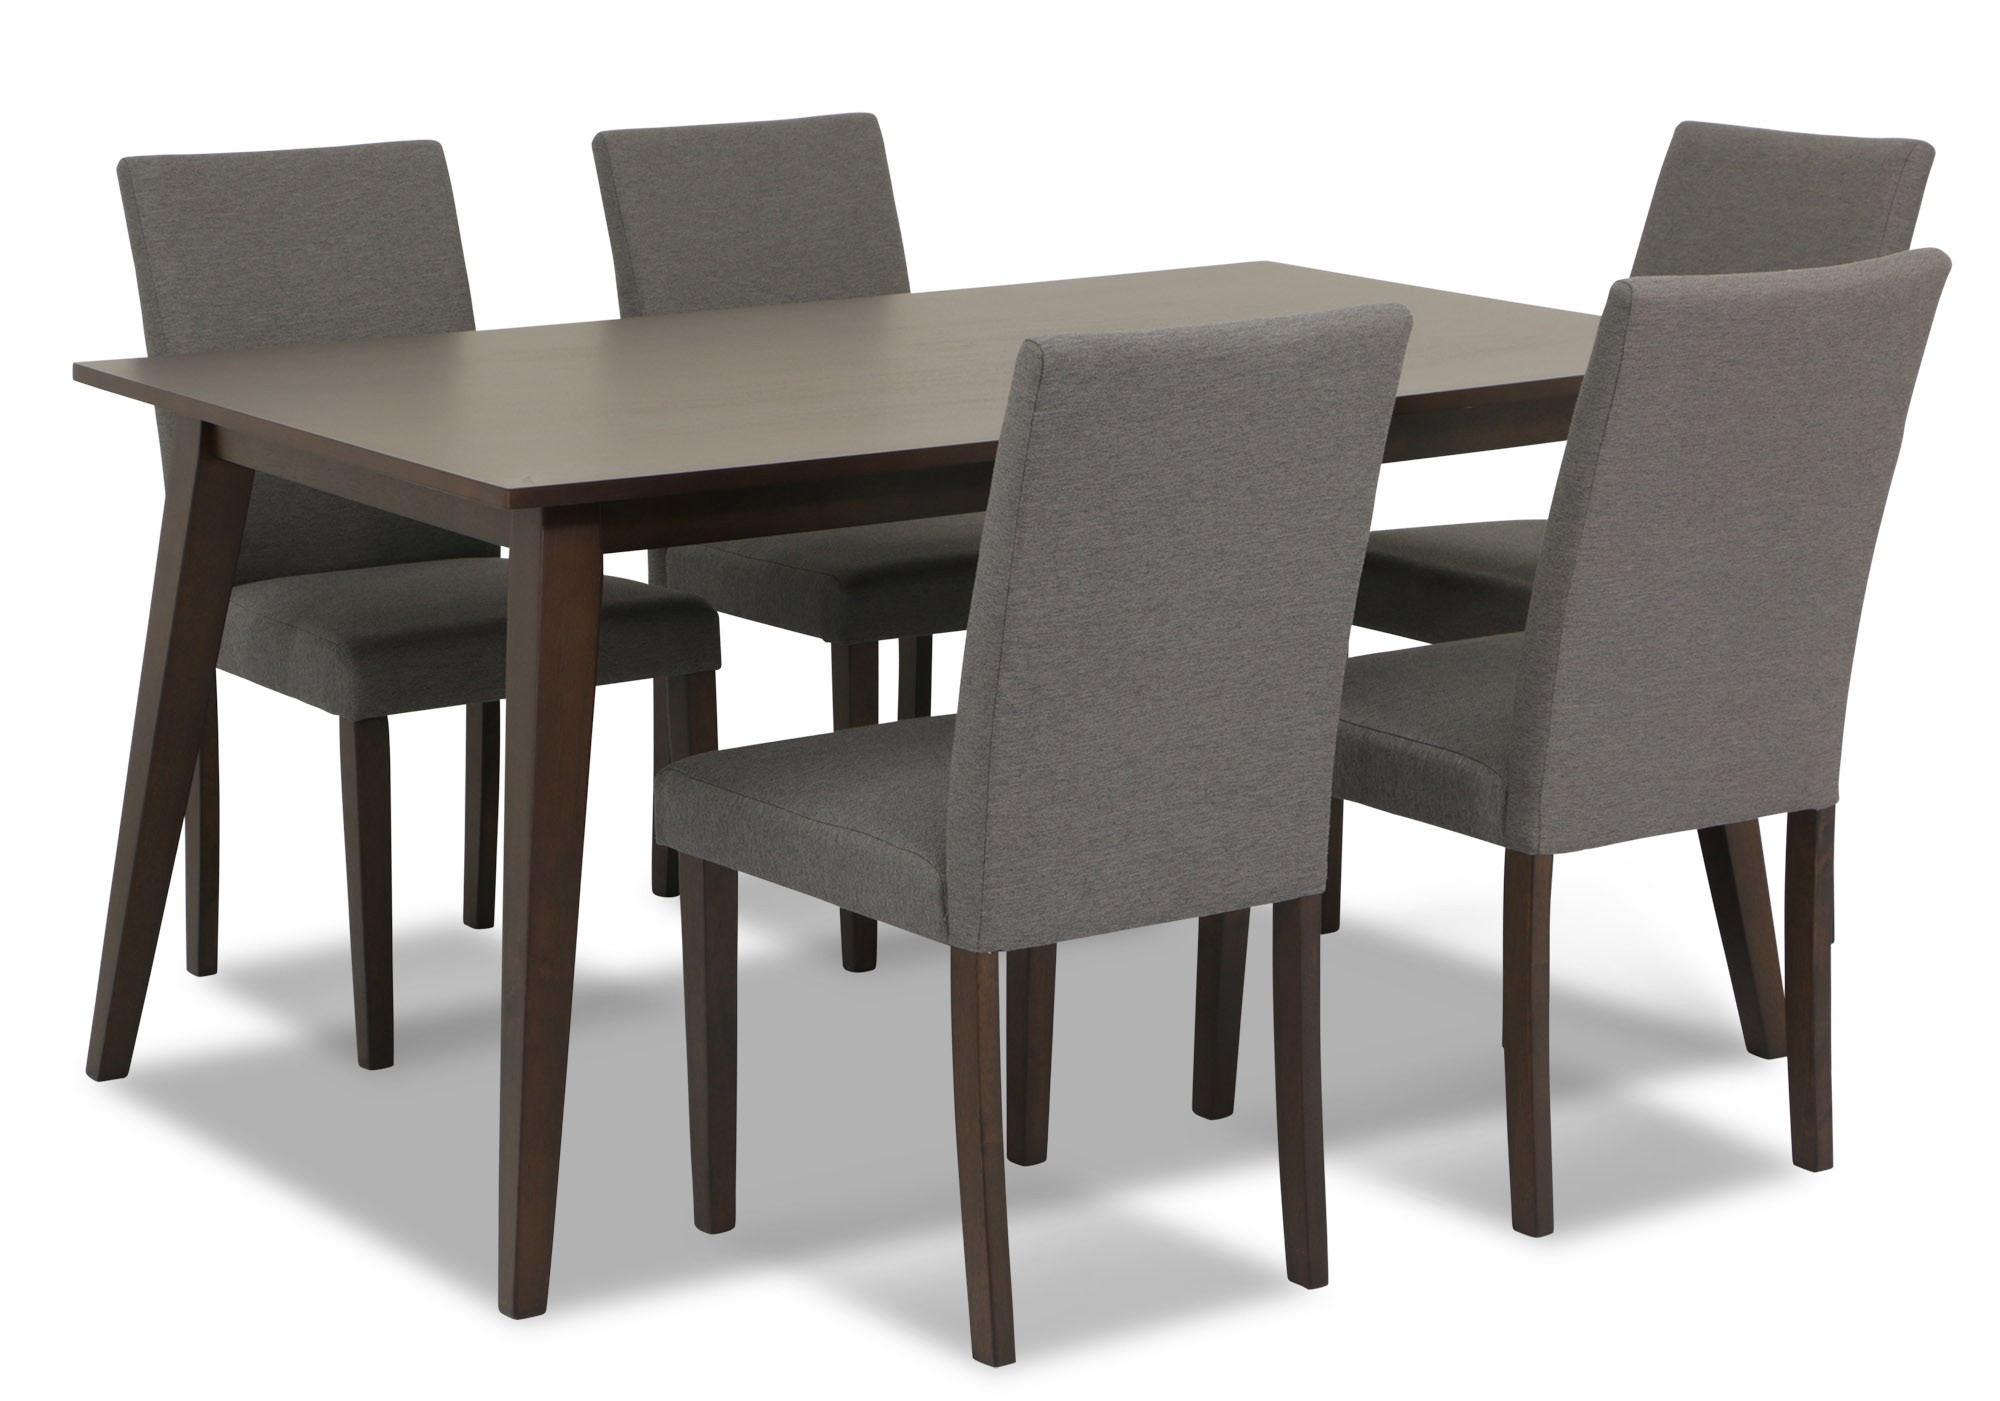 Libby Dining Table Set Wenge 1 6